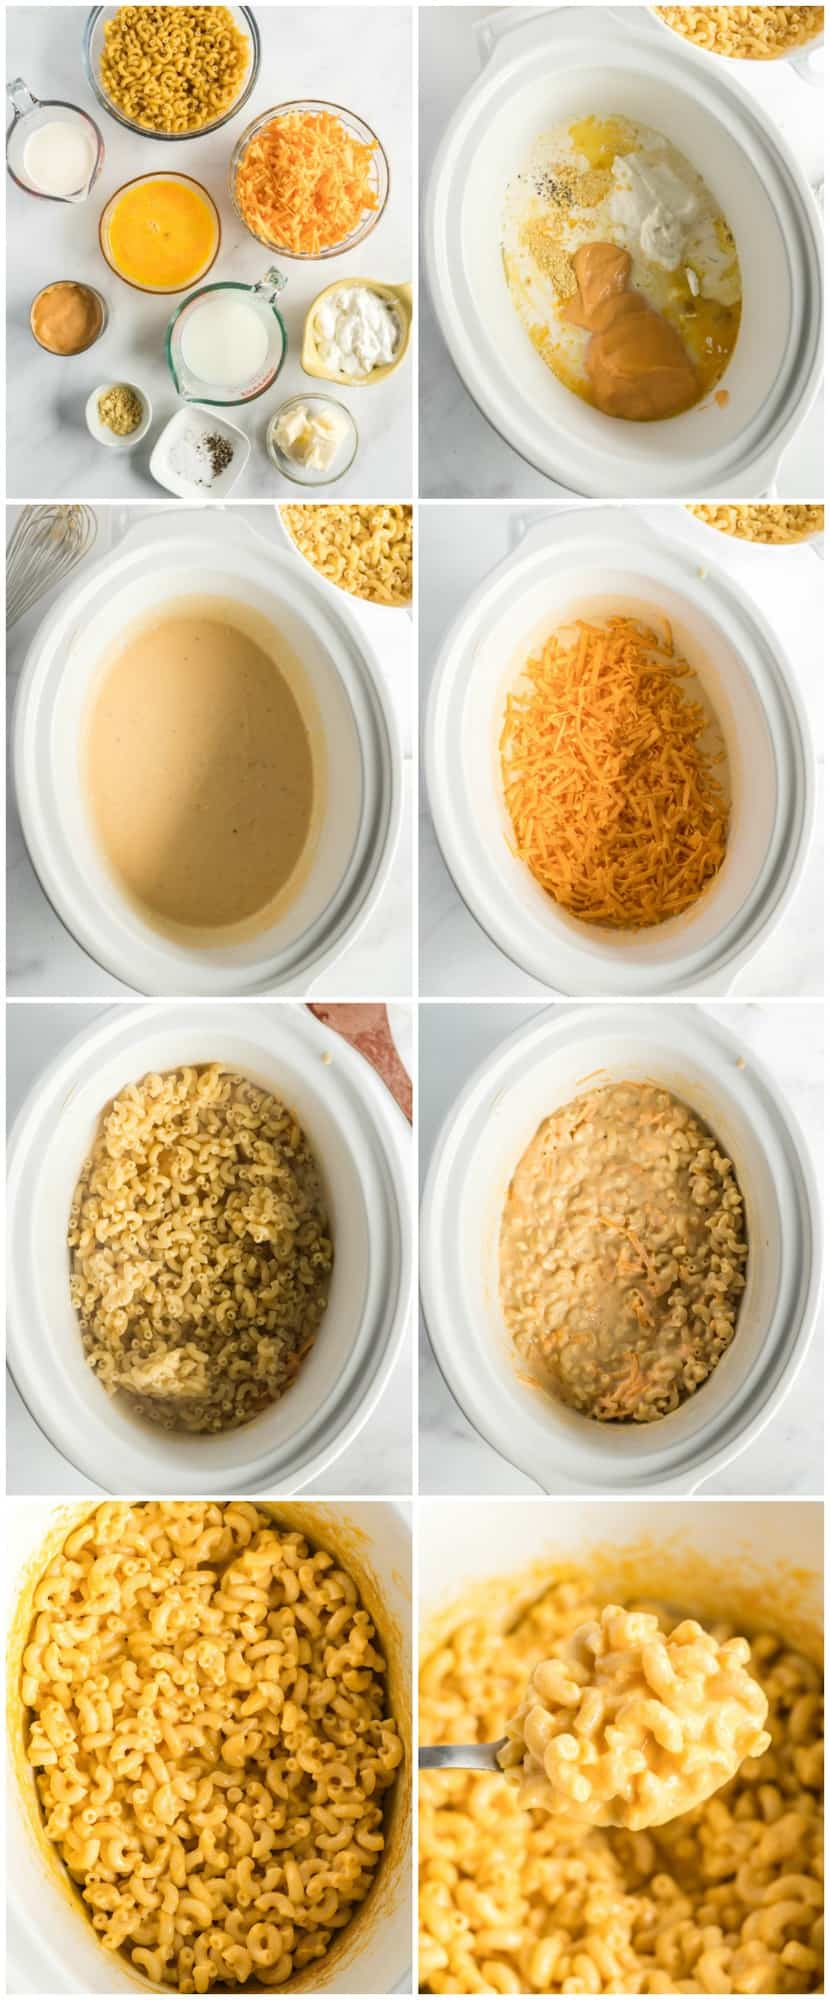 how to make crockpot mac and cheese step by step process shot photos